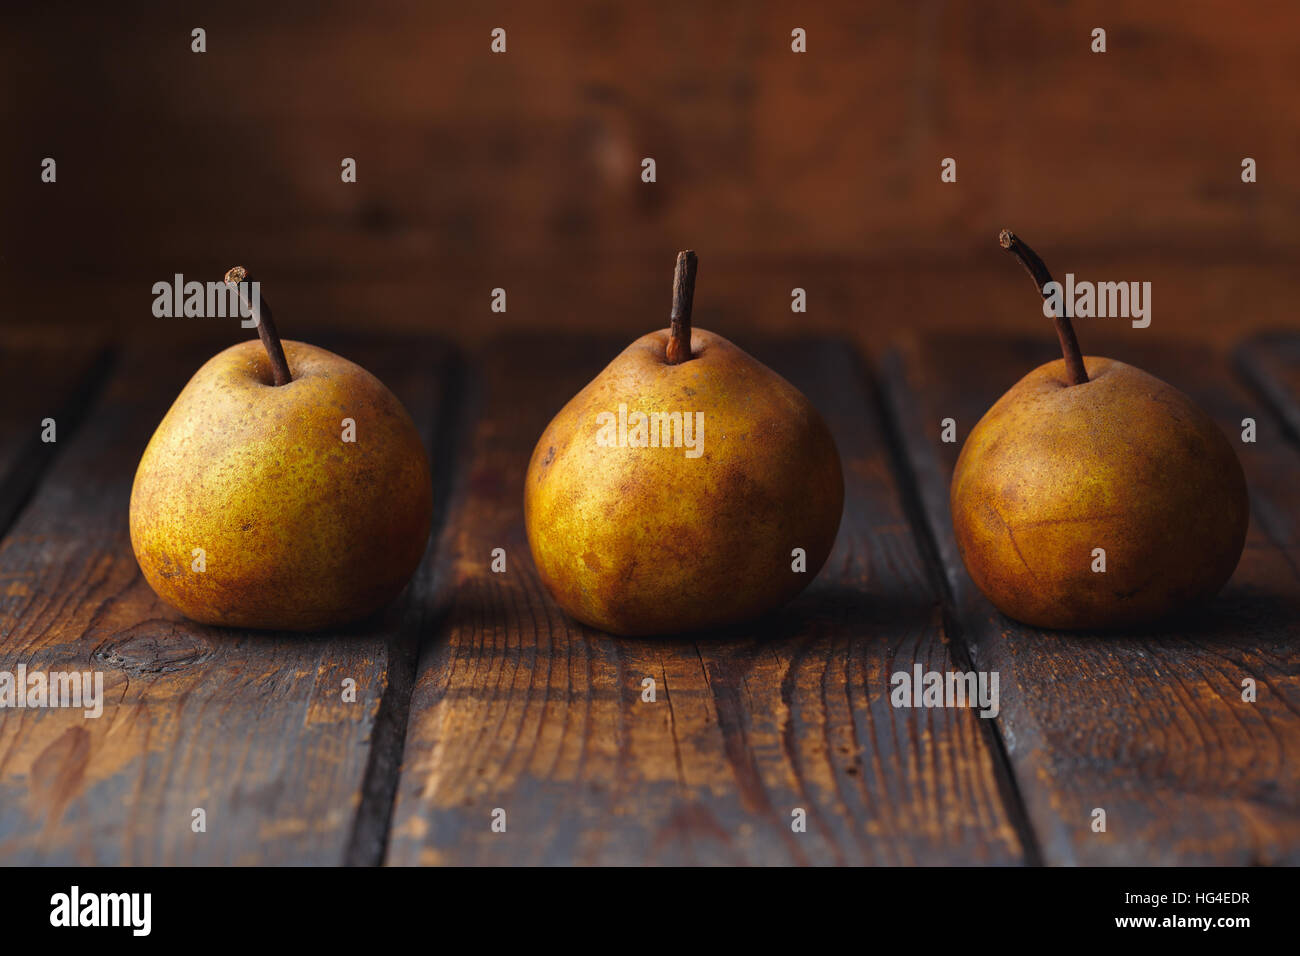 Brown ripe pears on a wooden table - Stock Image